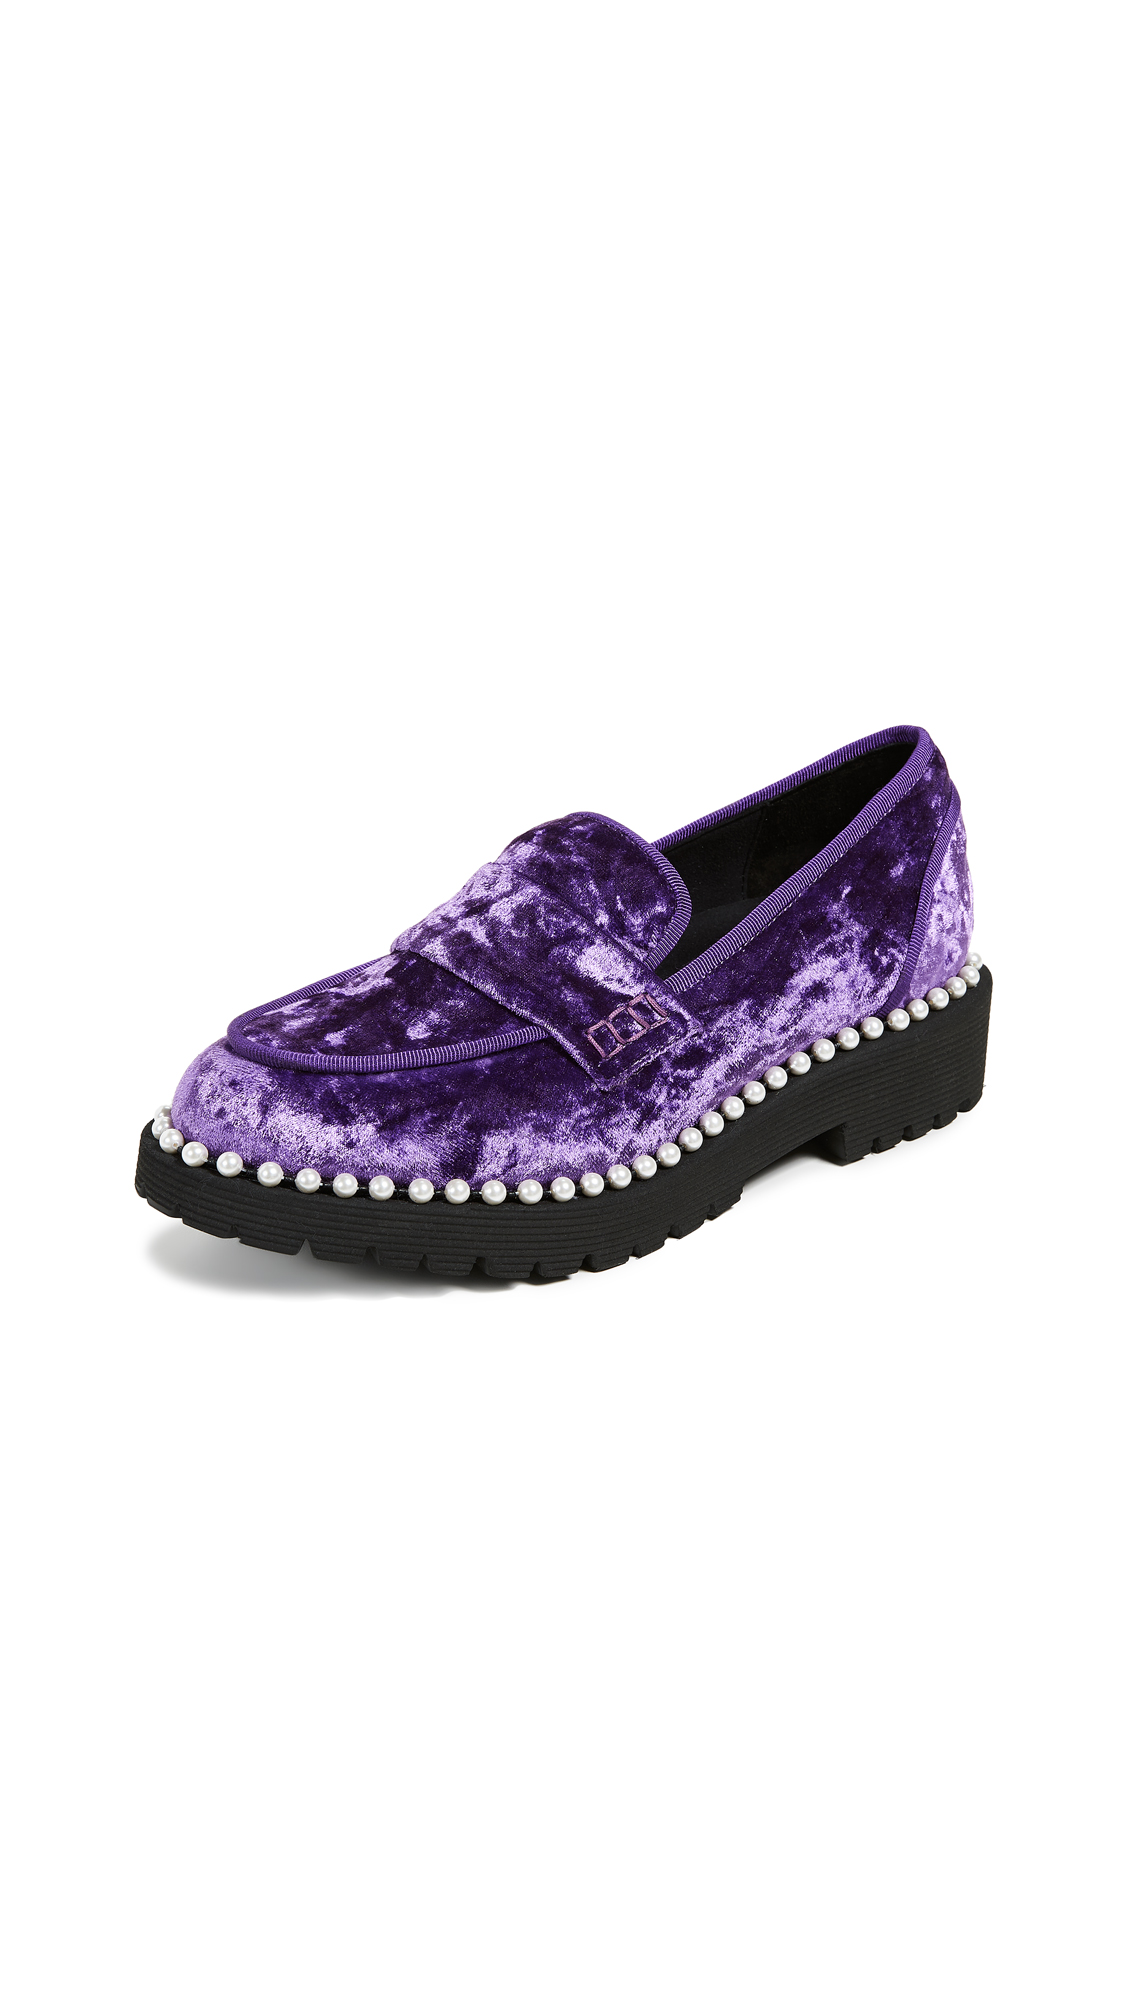 Suecomma Bonnie Velvet Loafers with Imitation Pearls